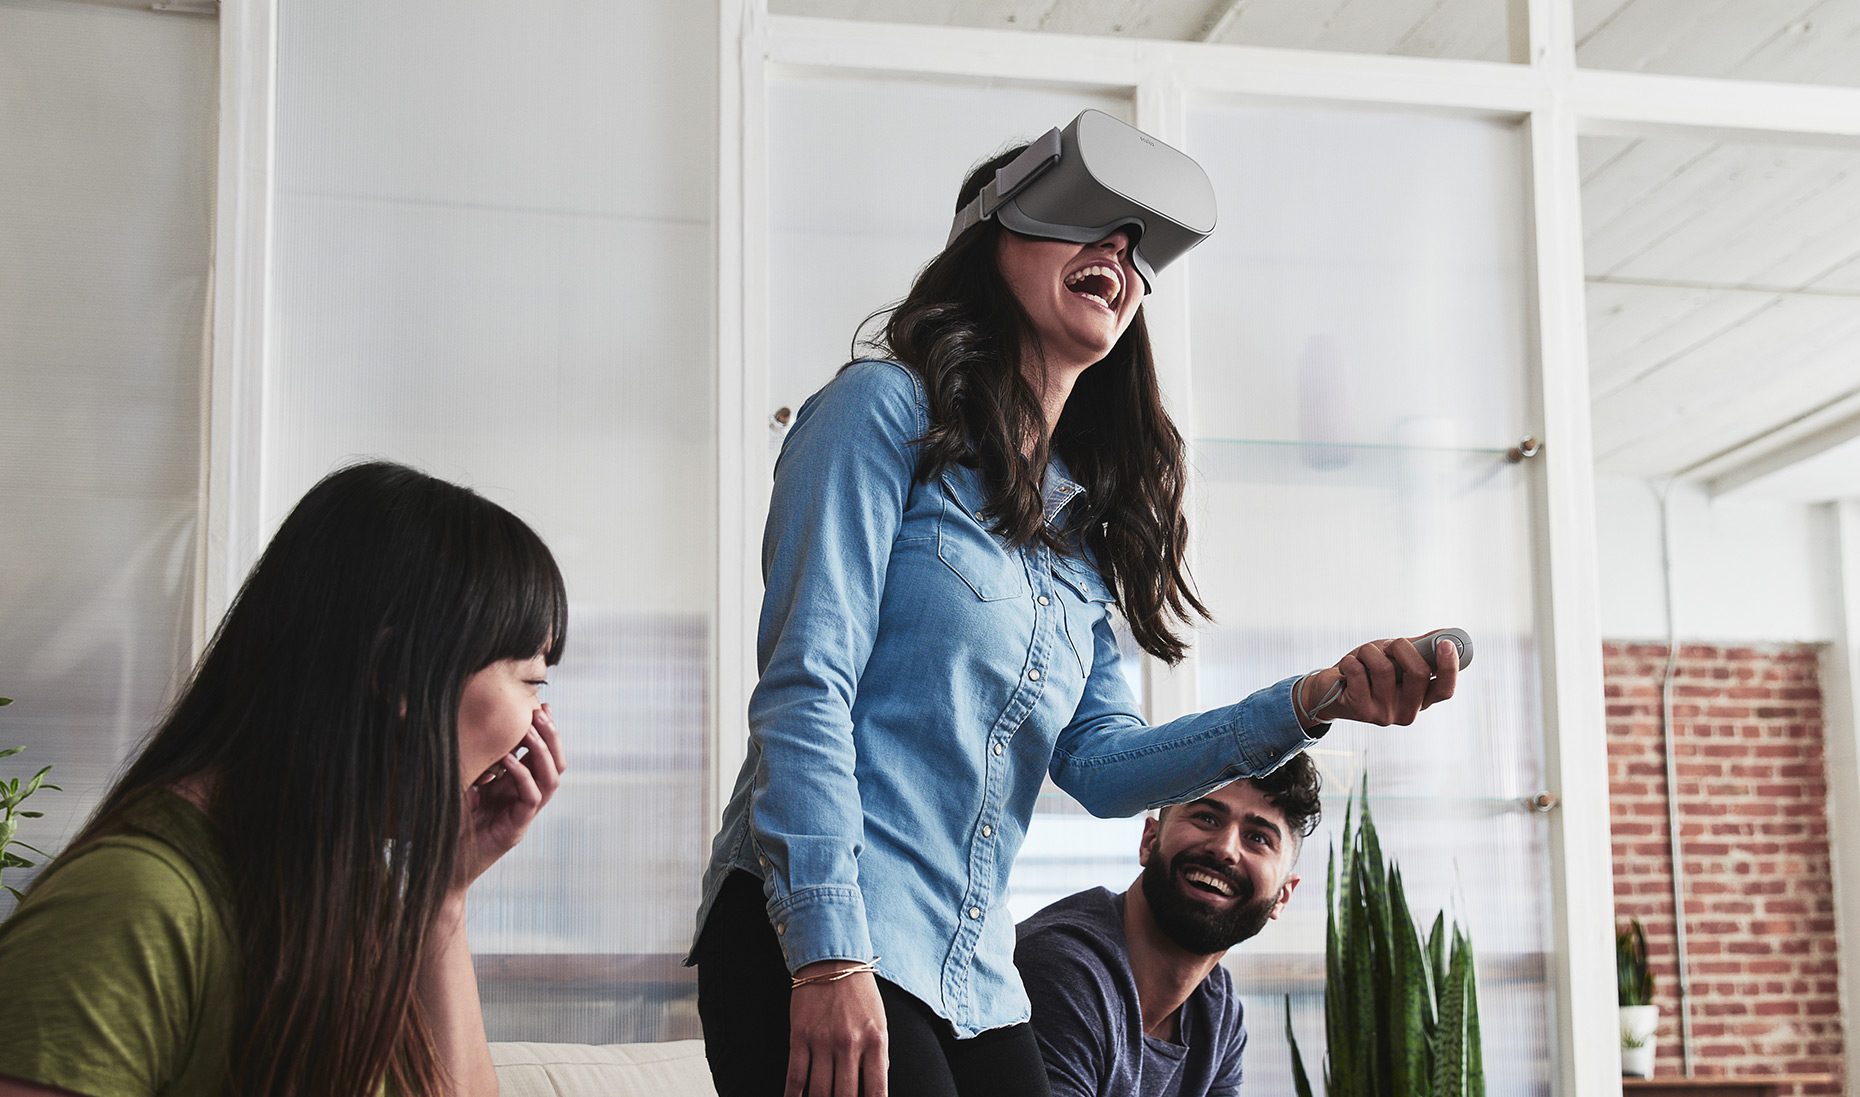 The Top 4 Reasons Why Oculus Go is Making VR for Business More Practical